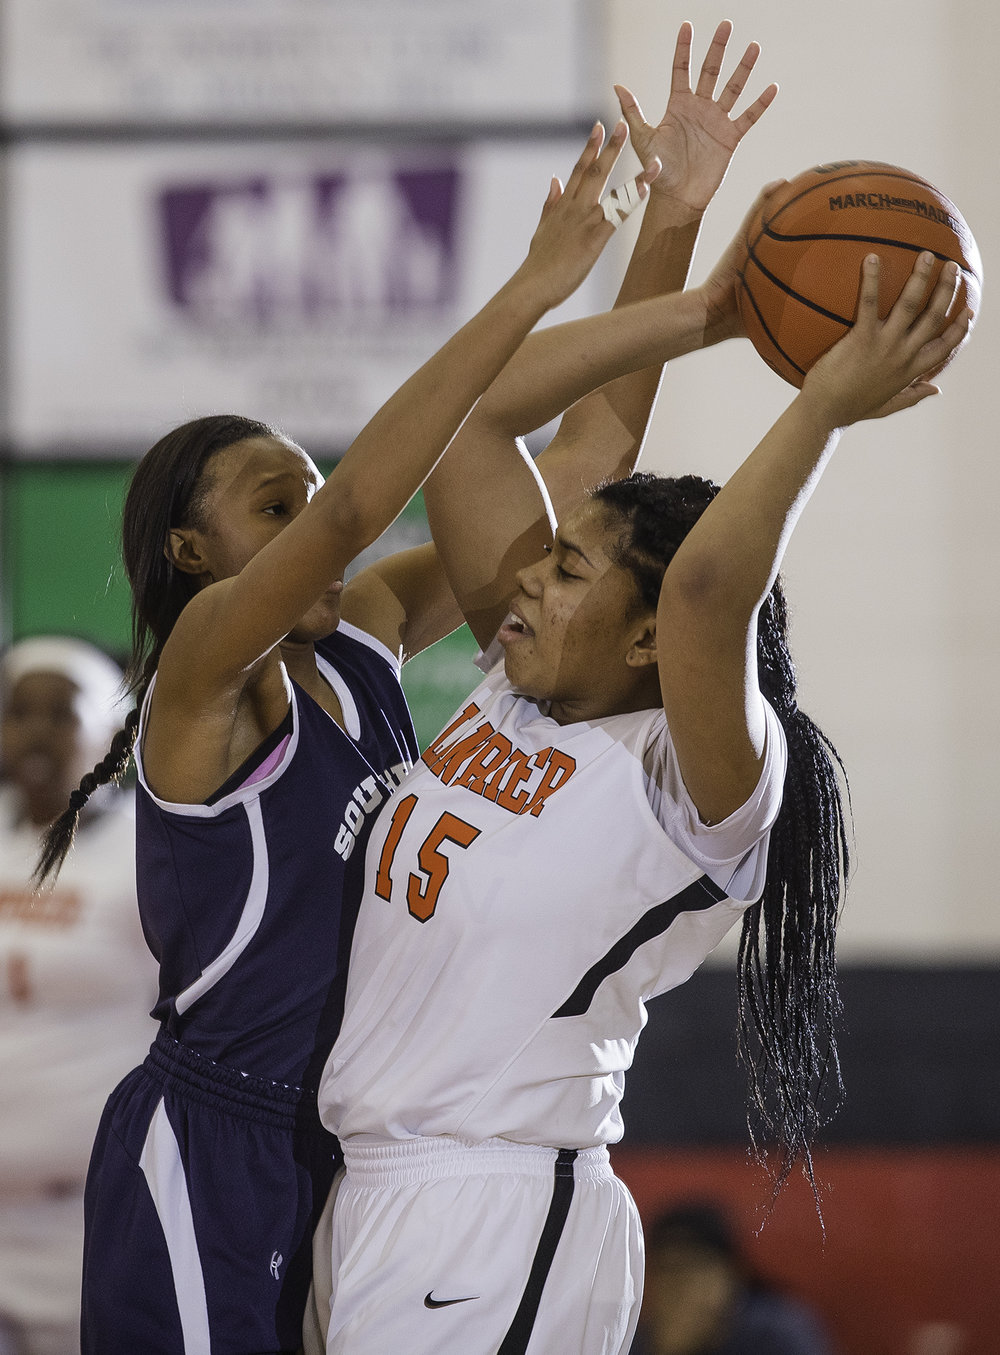 Southeast's Osiana Small tries to pass the ball under pressure from a Lanphier defender during the Girls City Tournament at Springfield High School Saturday, Jan. 26, 2018. [Ted Schurter/The State Journal-Register]